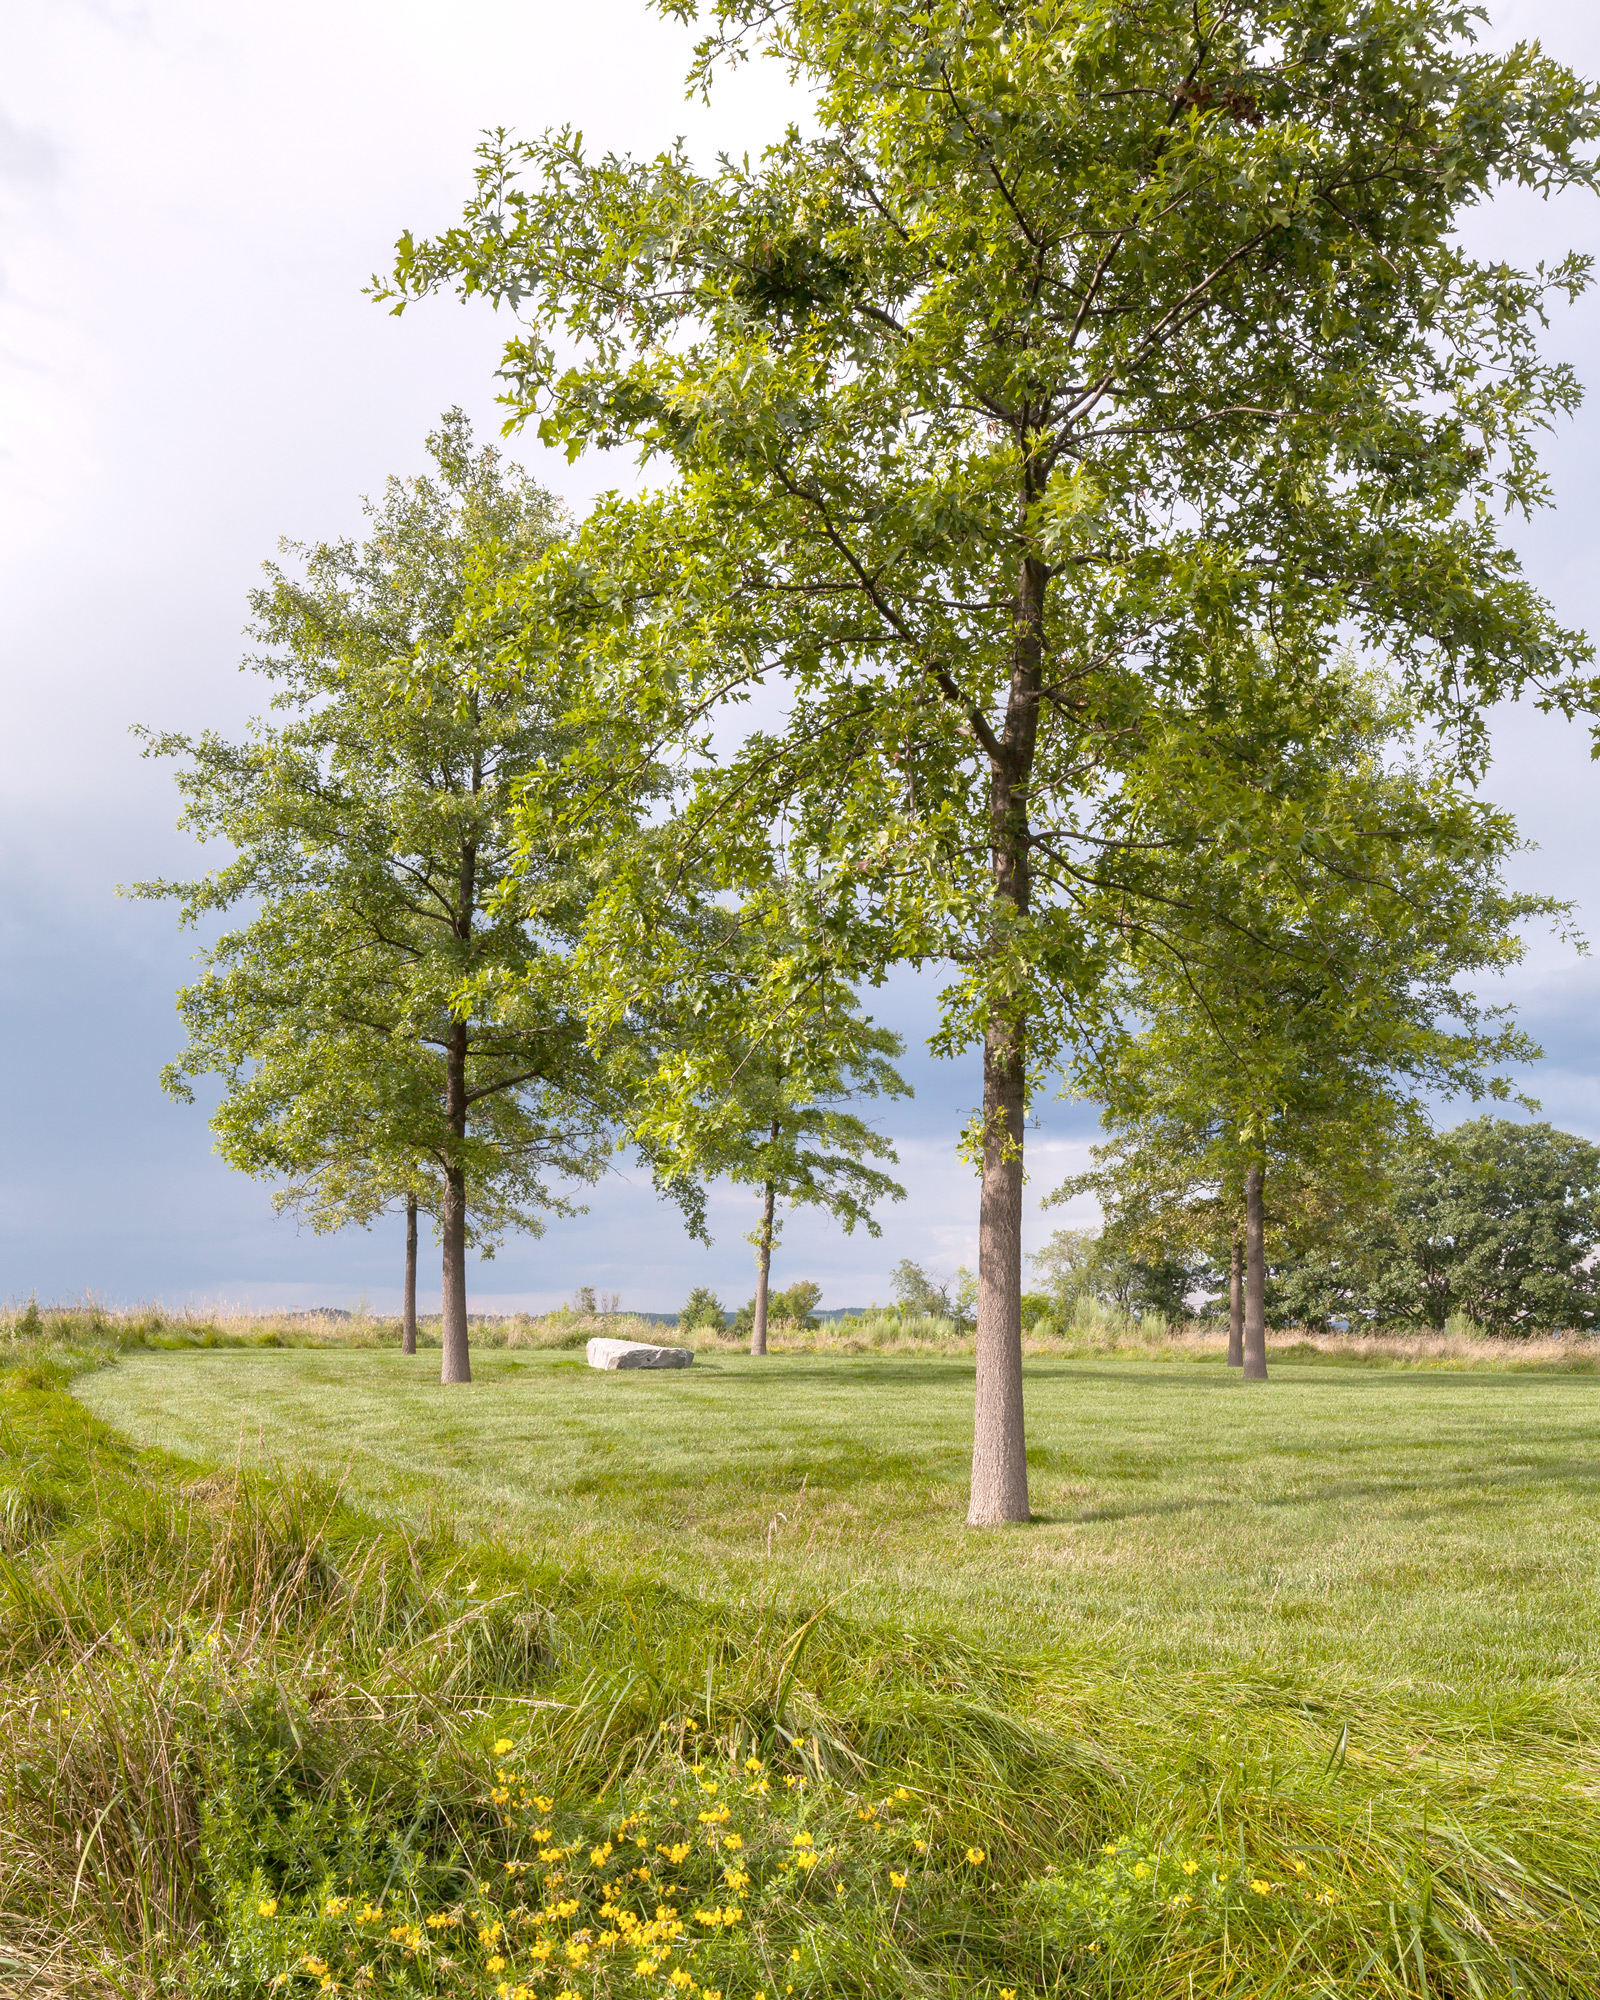 0614_Chatham Farm_Gallery Image_MESSINGER_2374